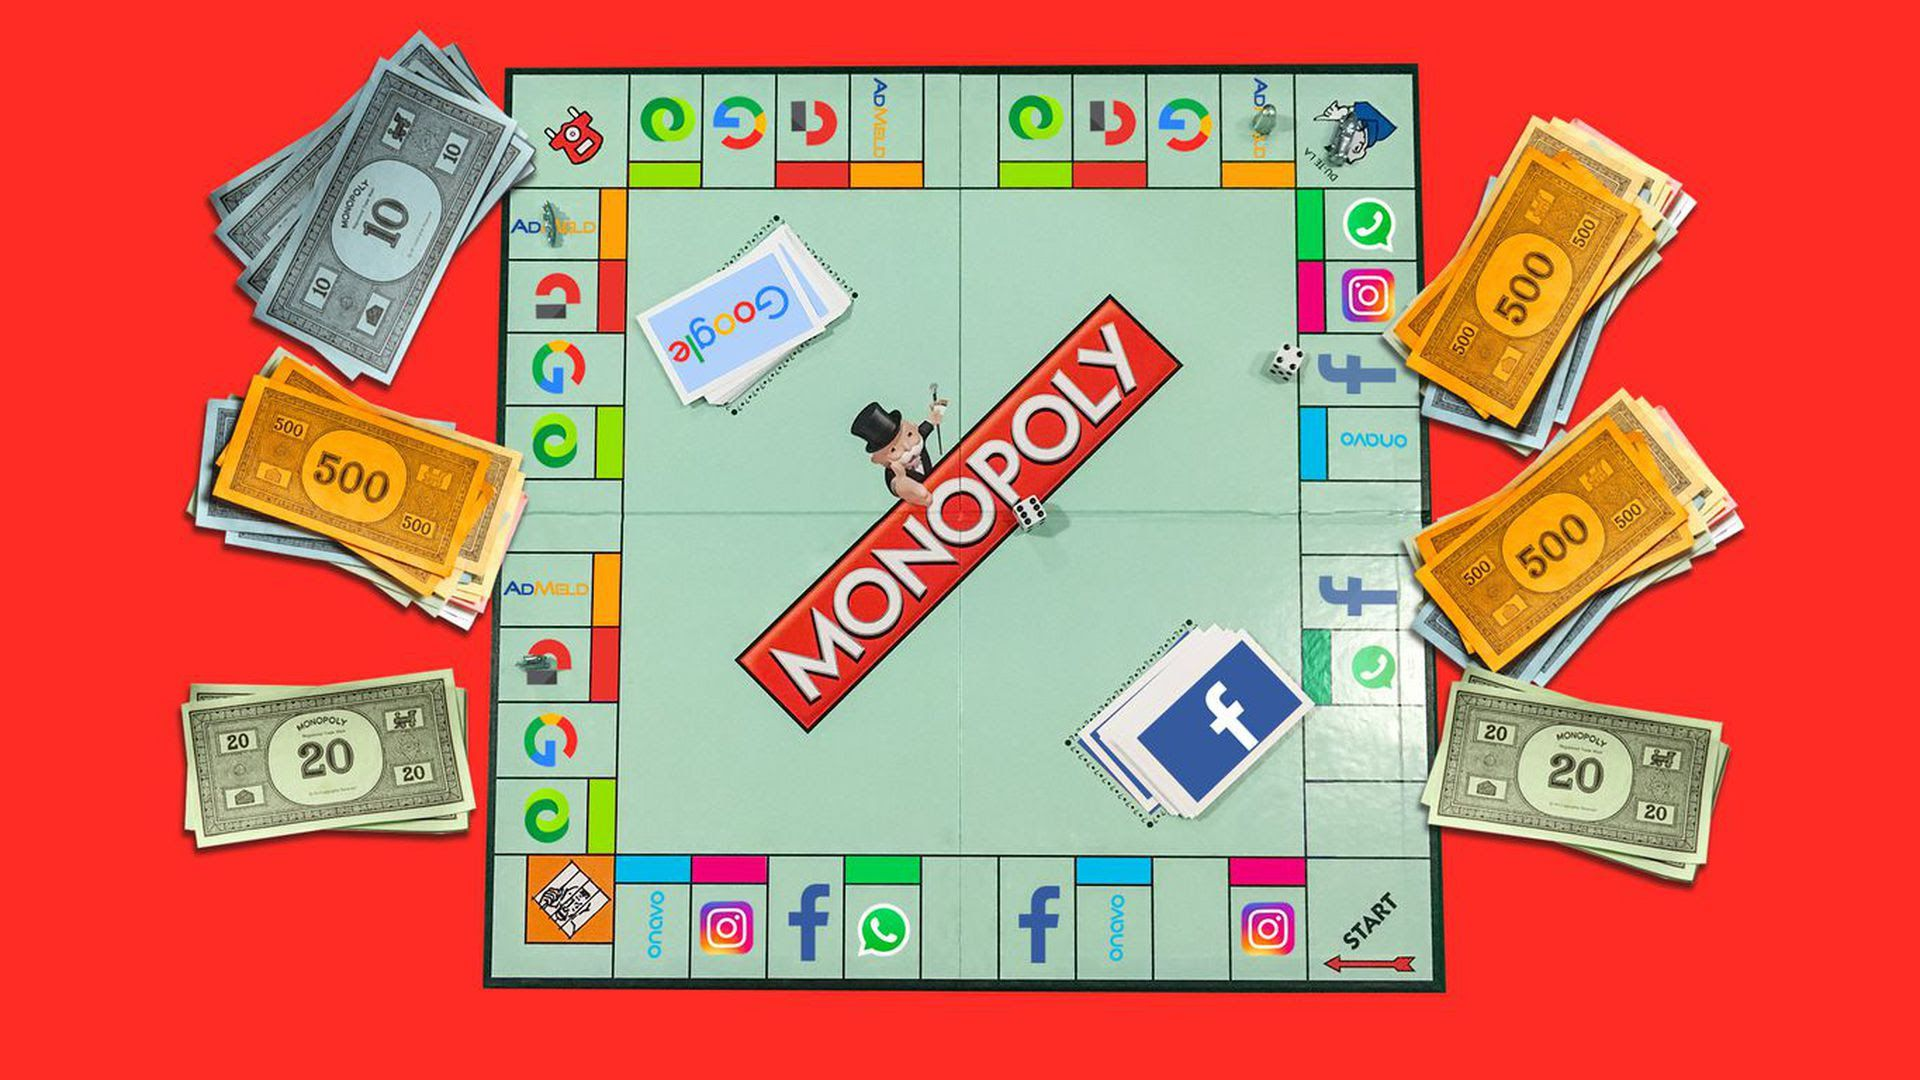 An illustration of a monopoly board with cash laying around it.